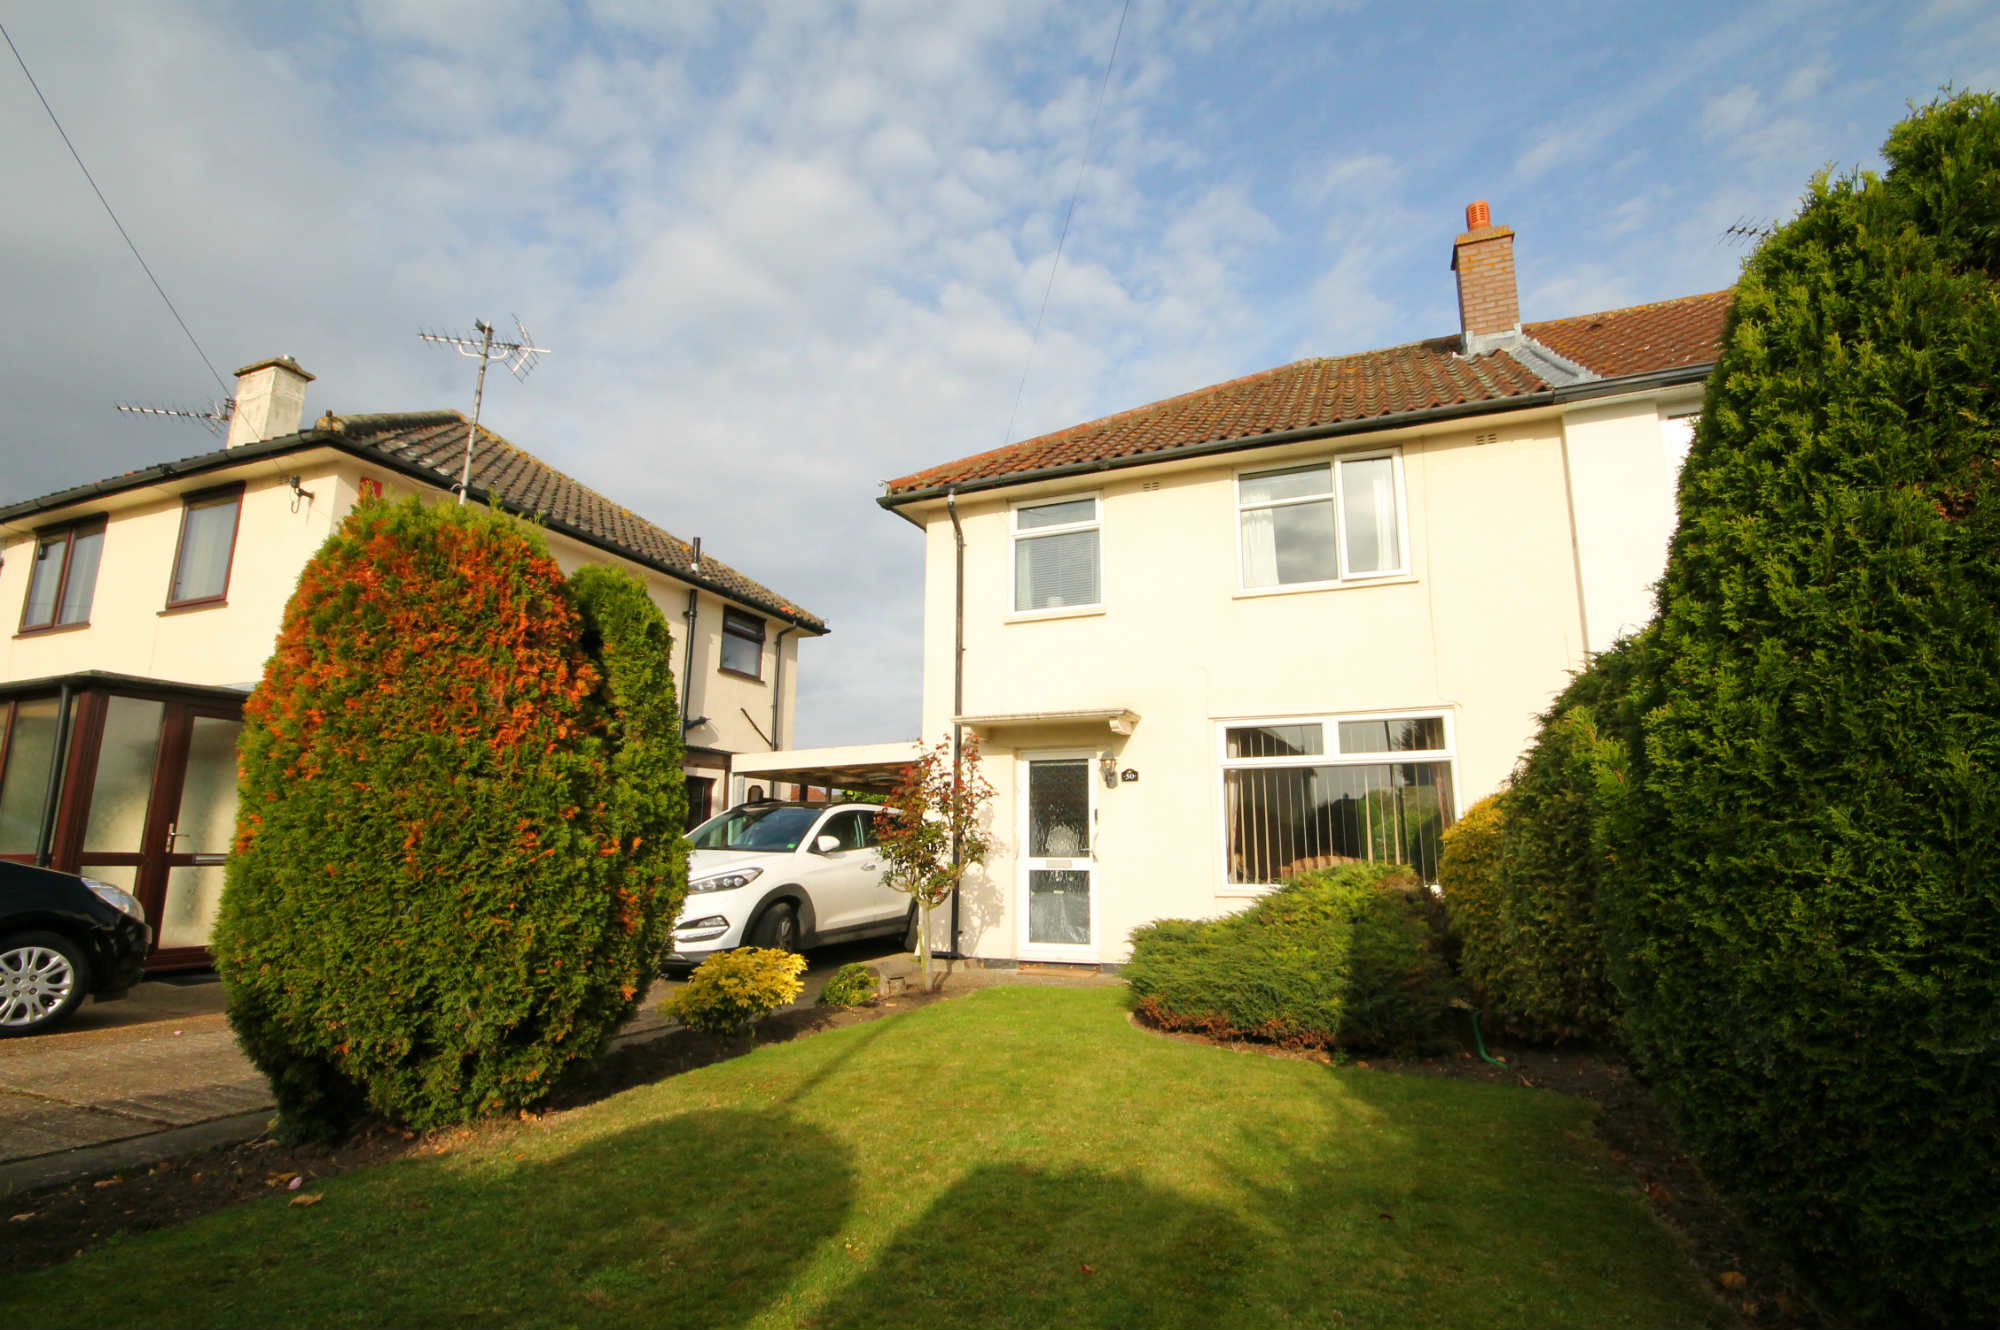 3 Bedroom House For Sale Fanshawe Road Cambridge Cb Cb1 3qy